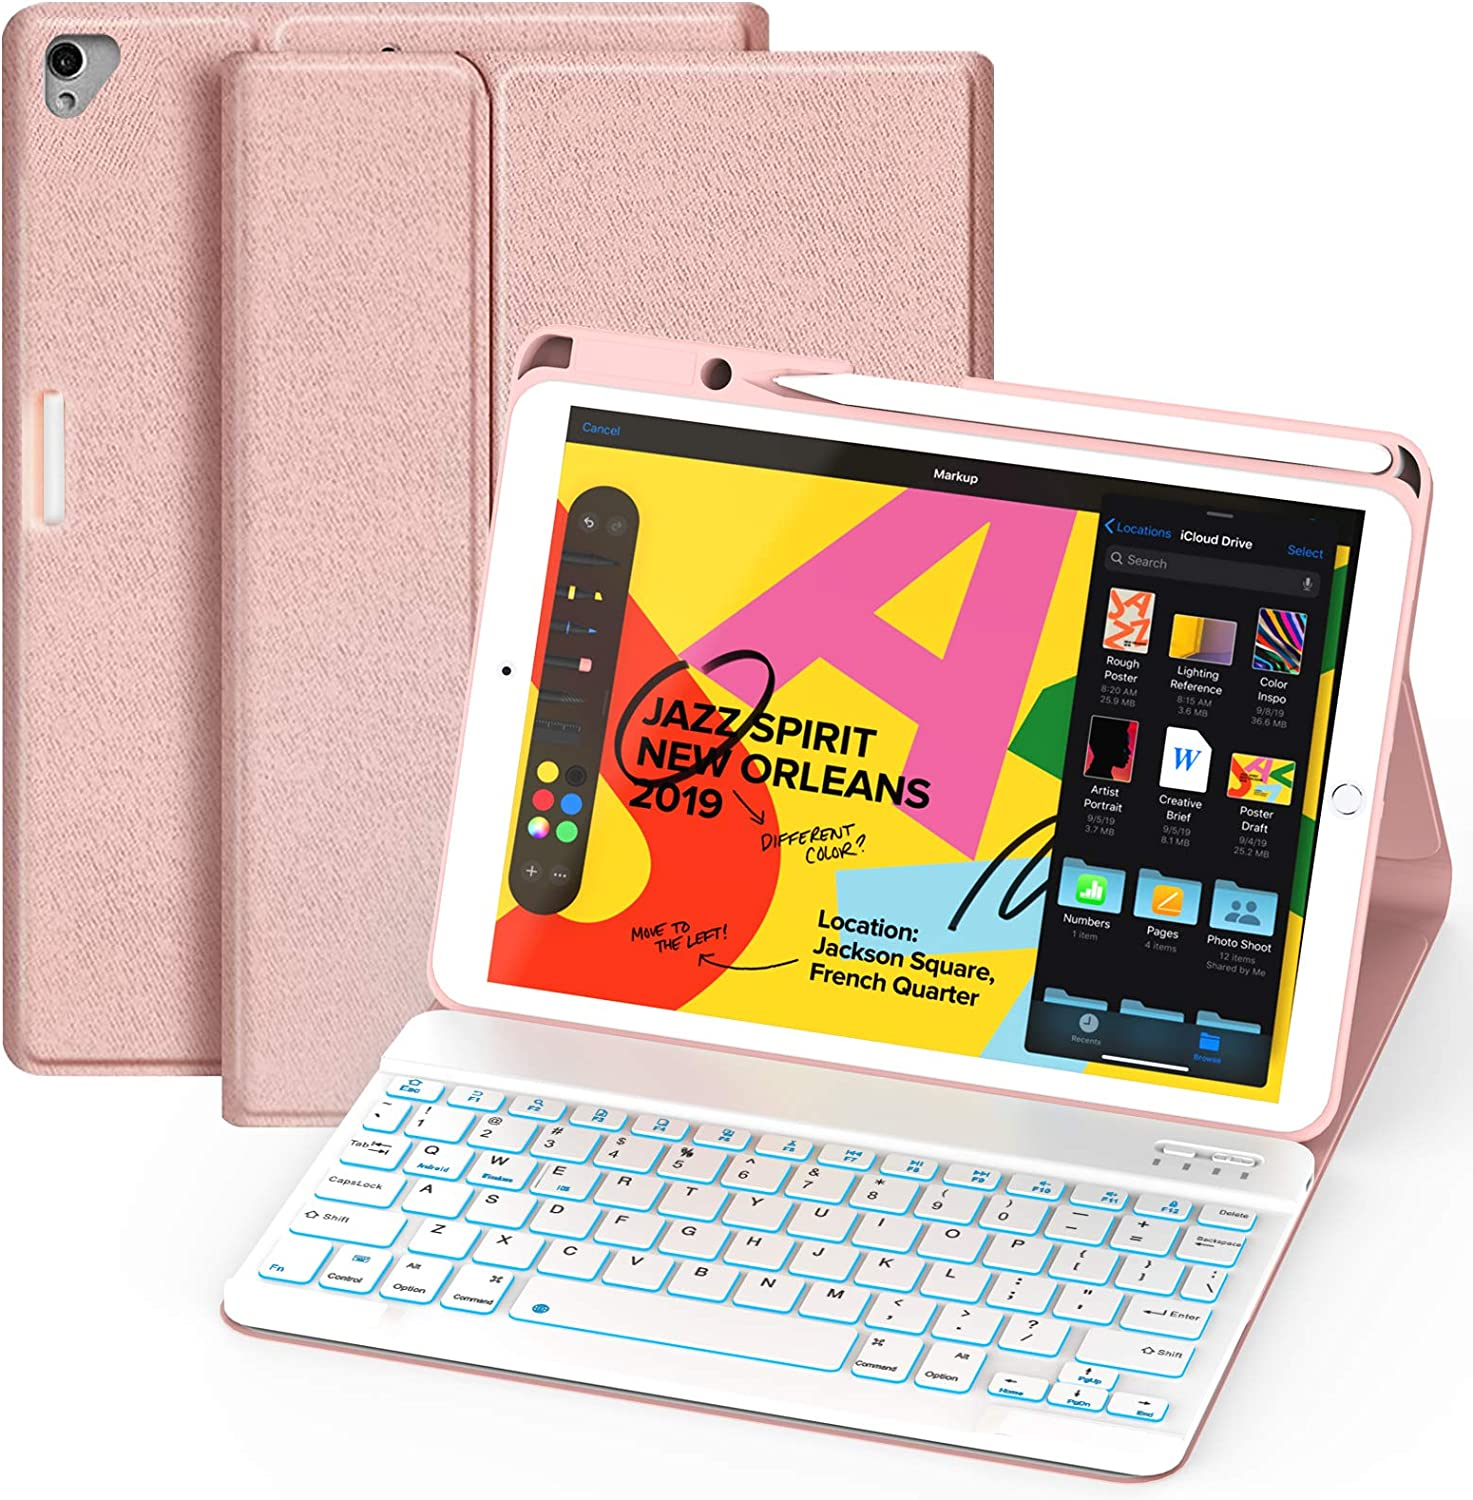 Maxfree iPad Keyboard Case 8th 7th Generation for iPad 10.2 2019, 7 Colors Backlit Magnetically Detachable Wireless Keyboard with Pencil Holder, Full Folio Cover for iPad 10.2 Inch, Rose Golden